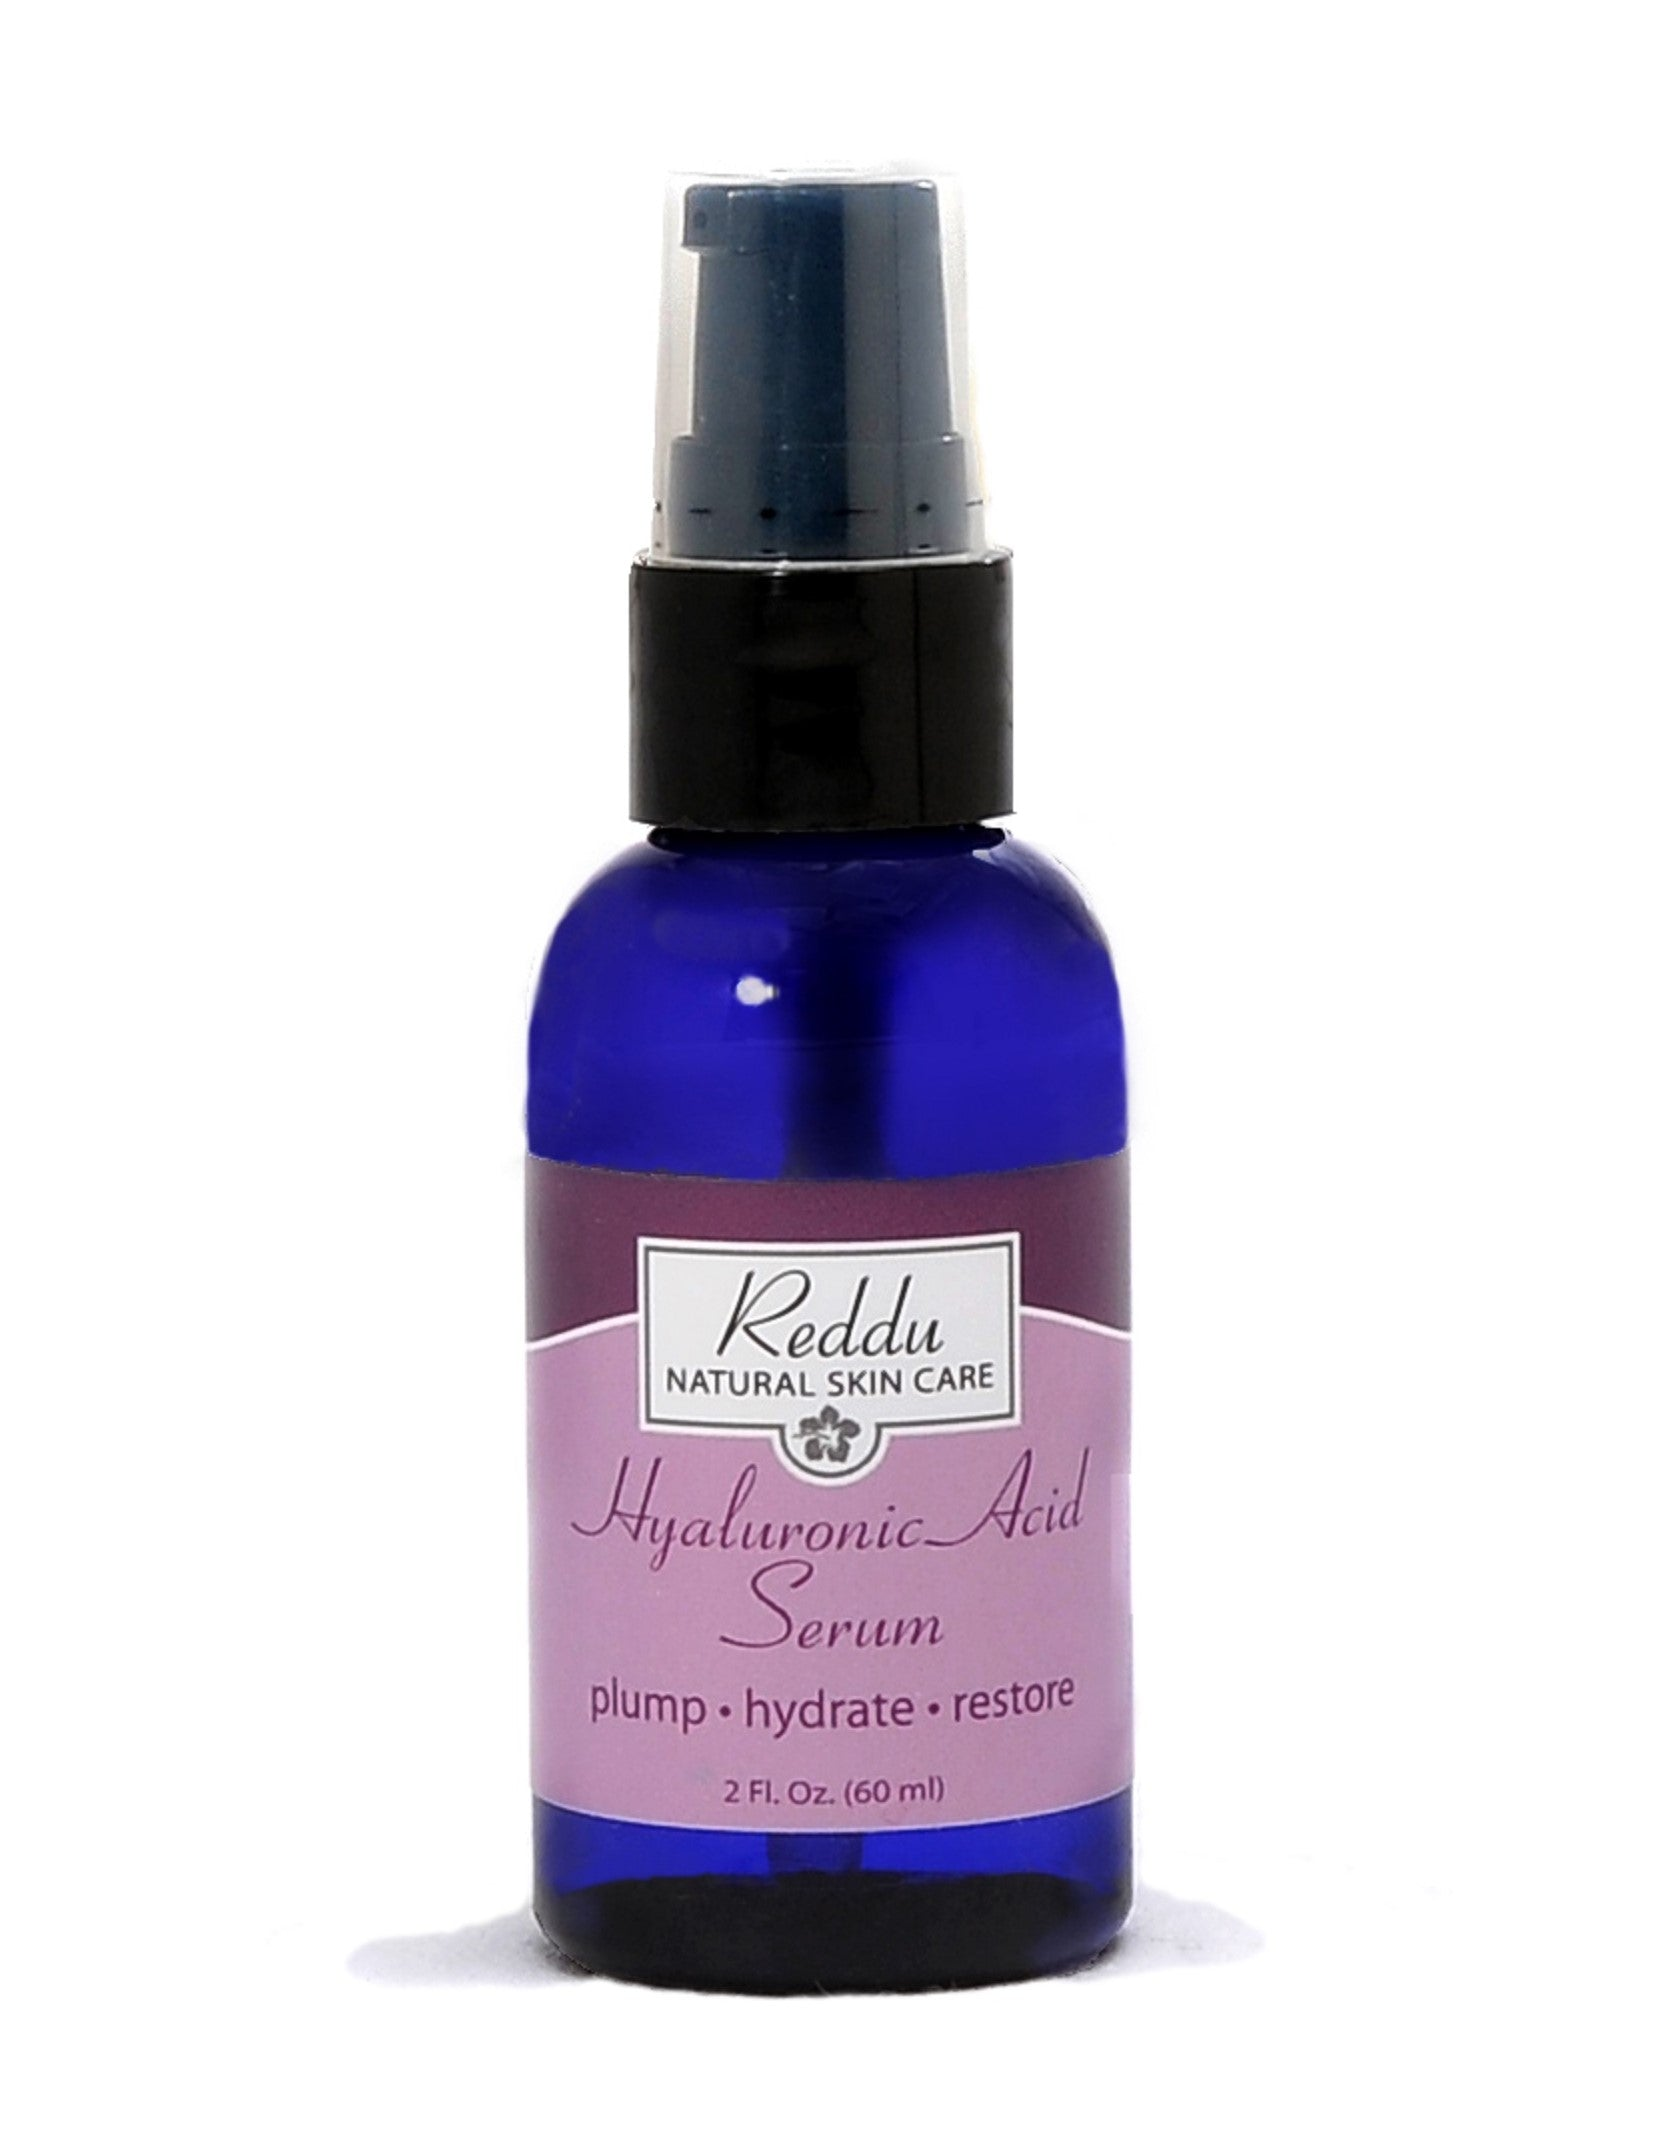 Reddu- Hyaluronic Acid Serum